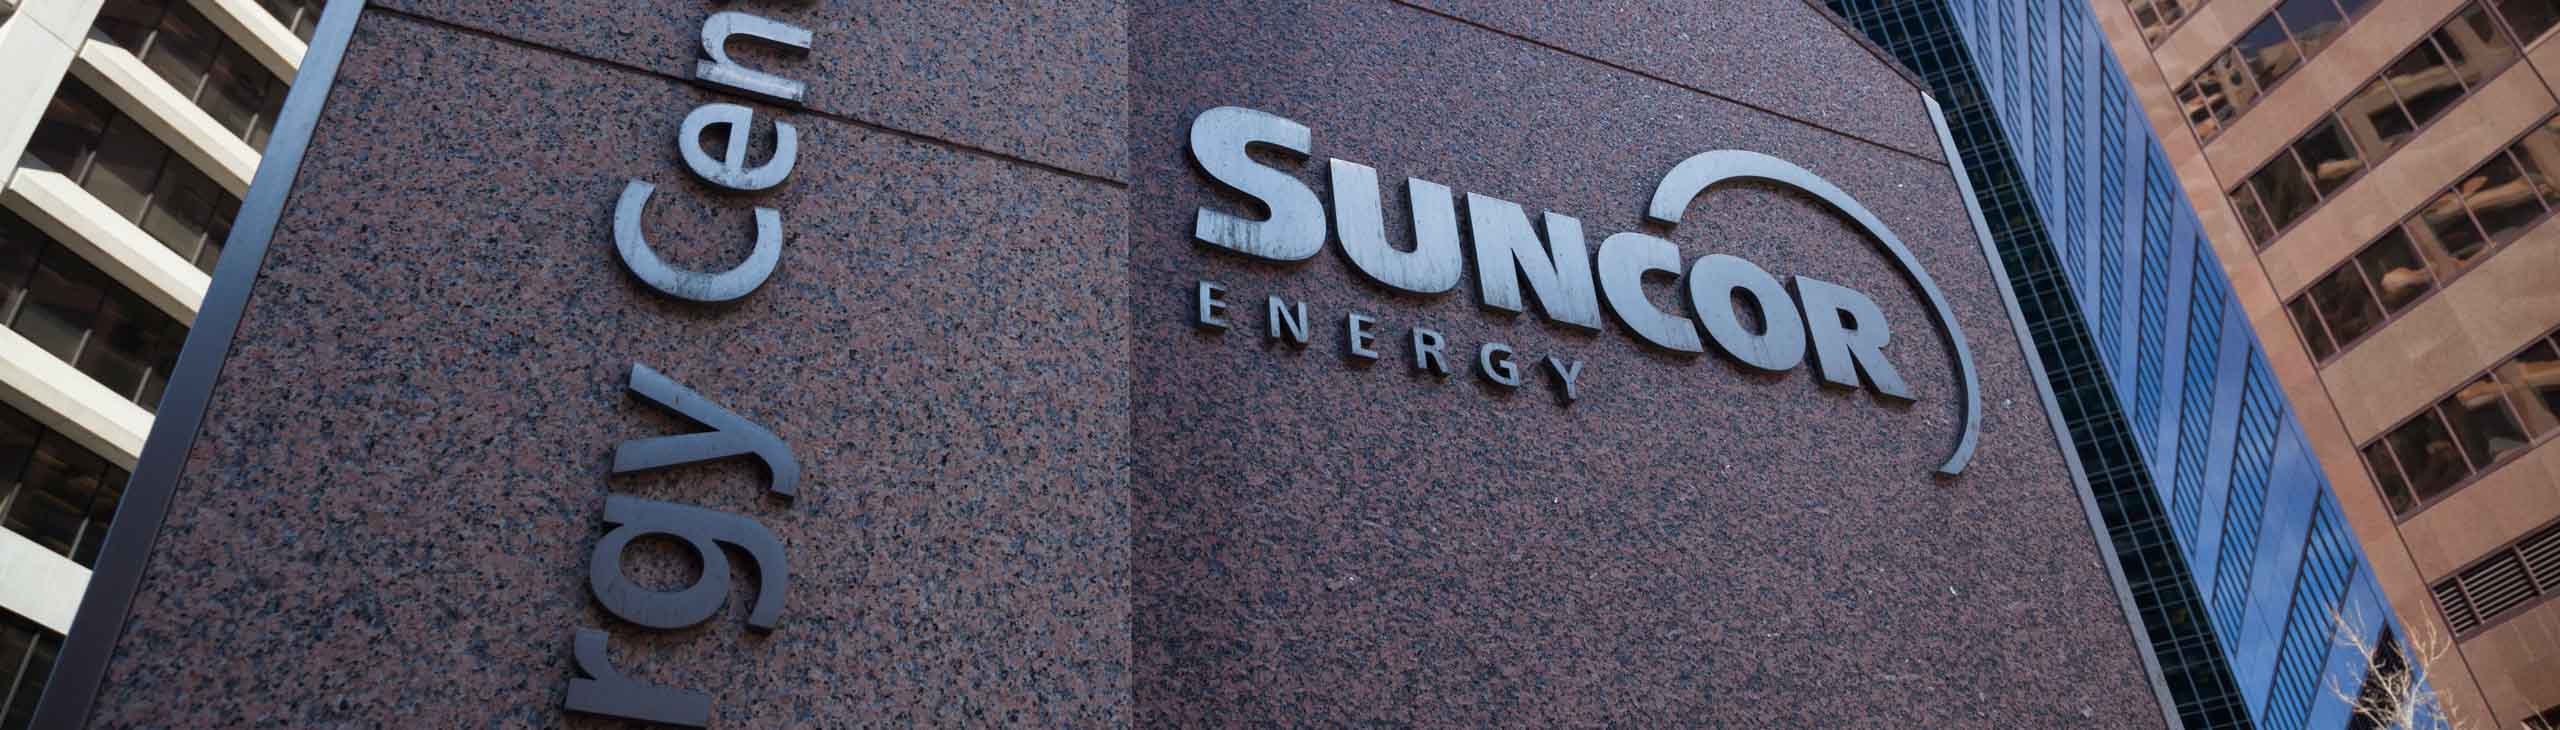 The granite sign in front of the Suncor Energy Centre.